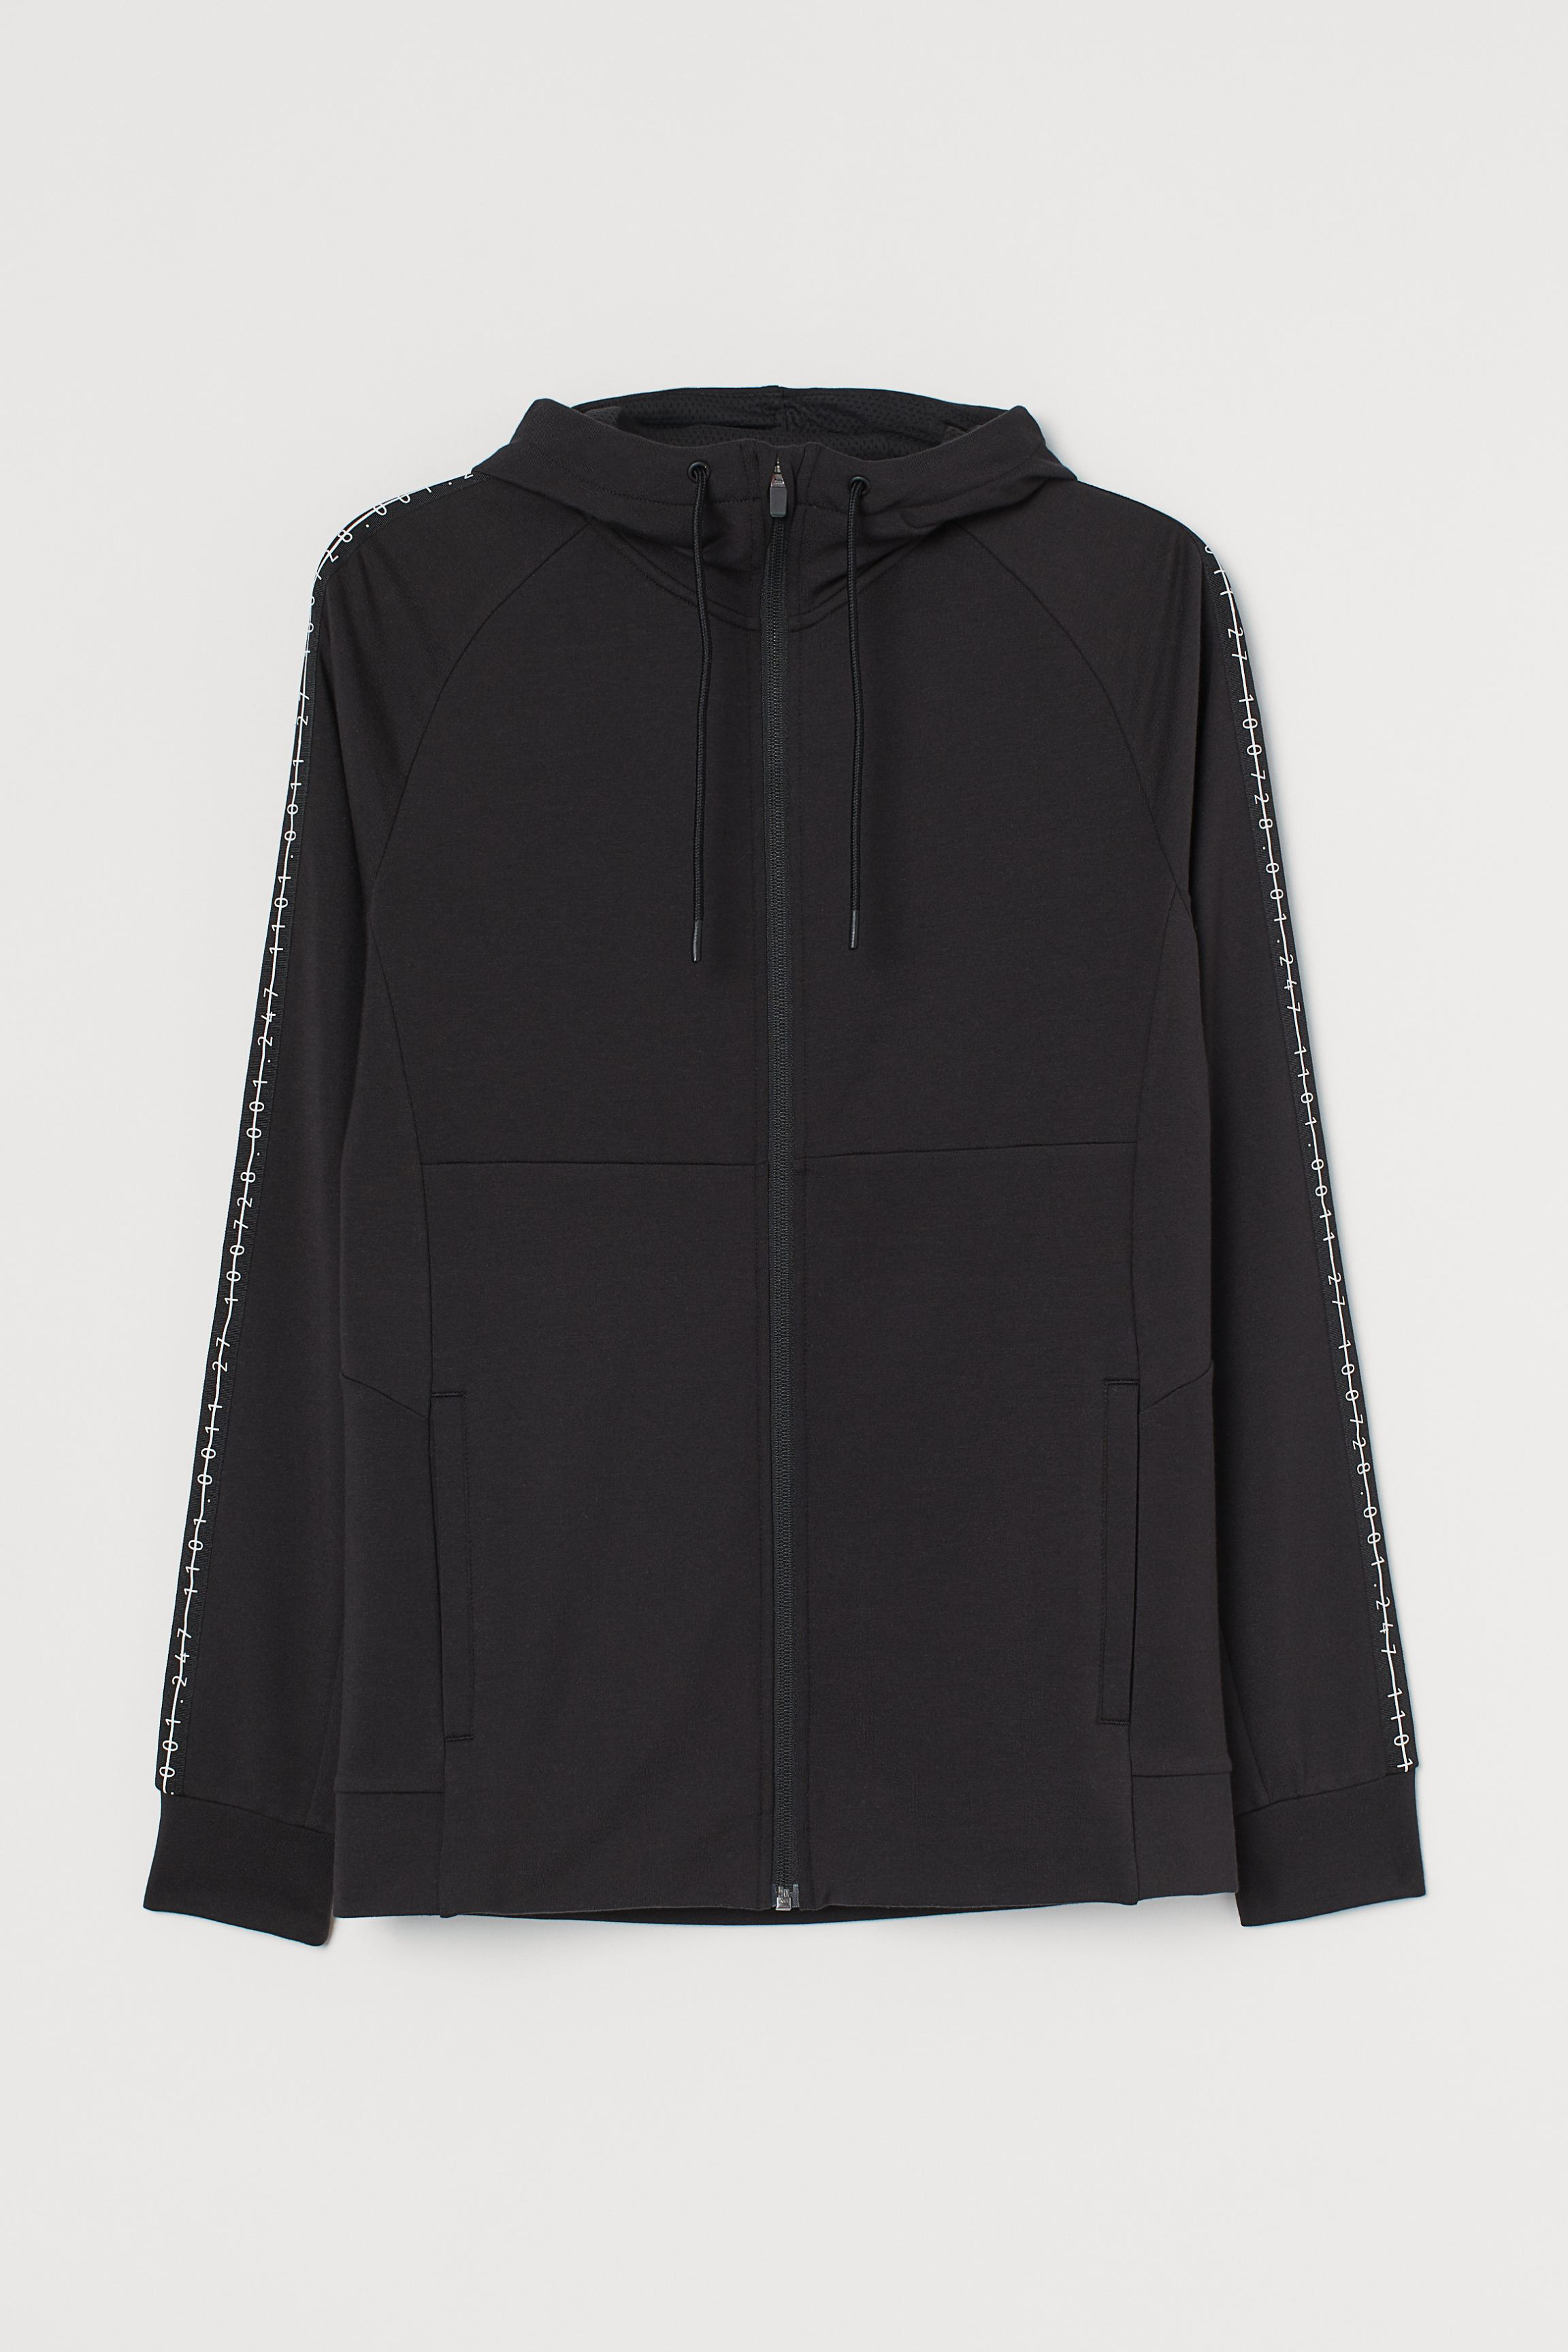 Muscle Fit Track Jacket